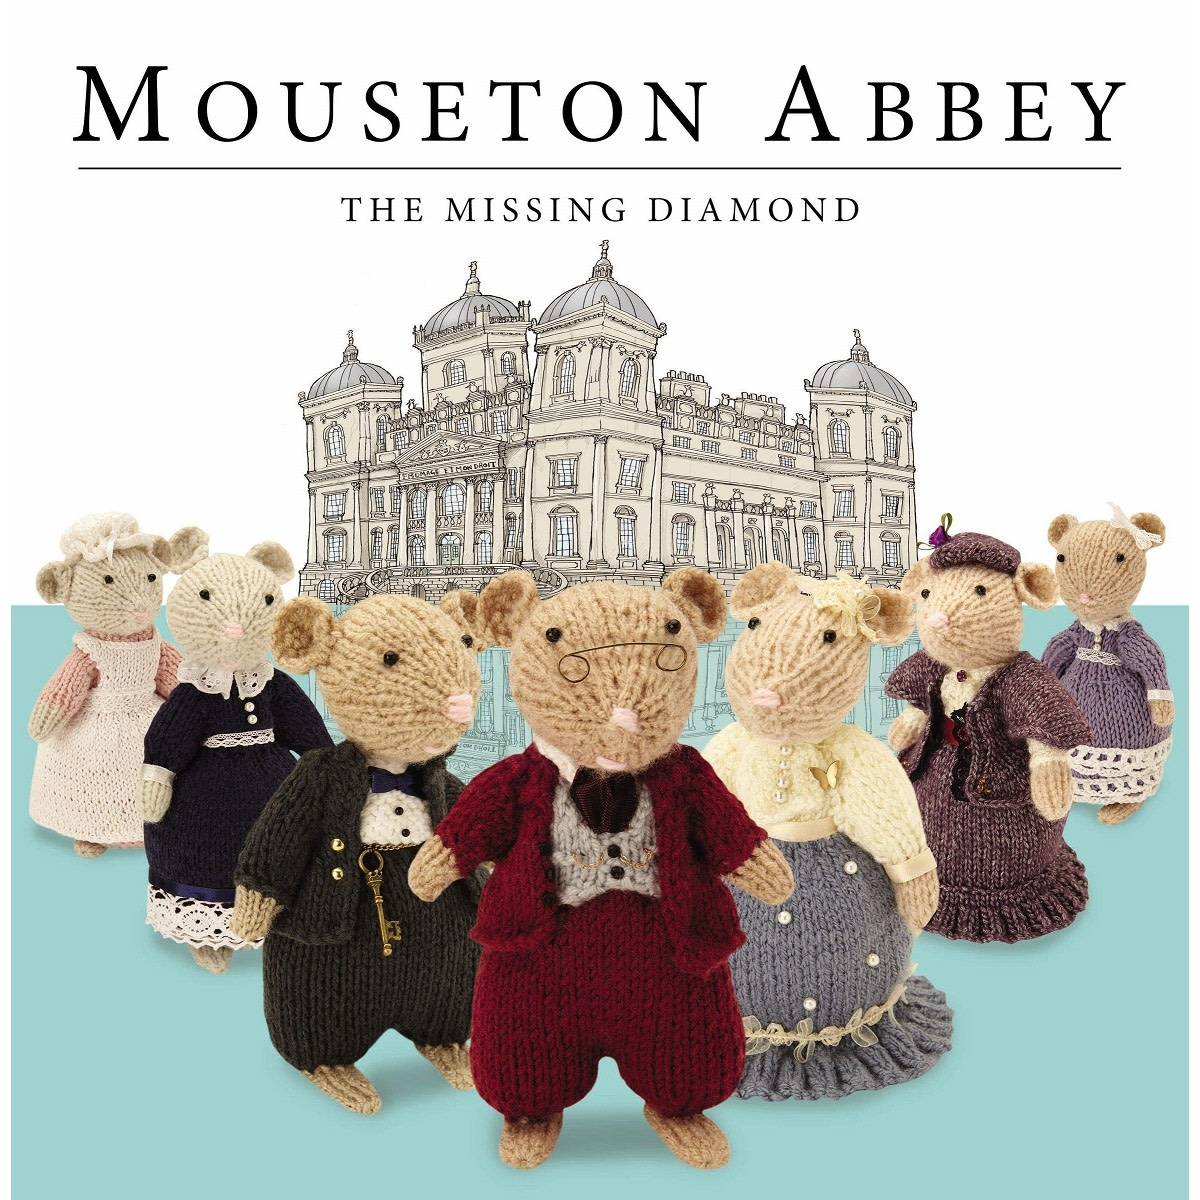 Book Book: Mouseton Abbey, The Missing Diamond